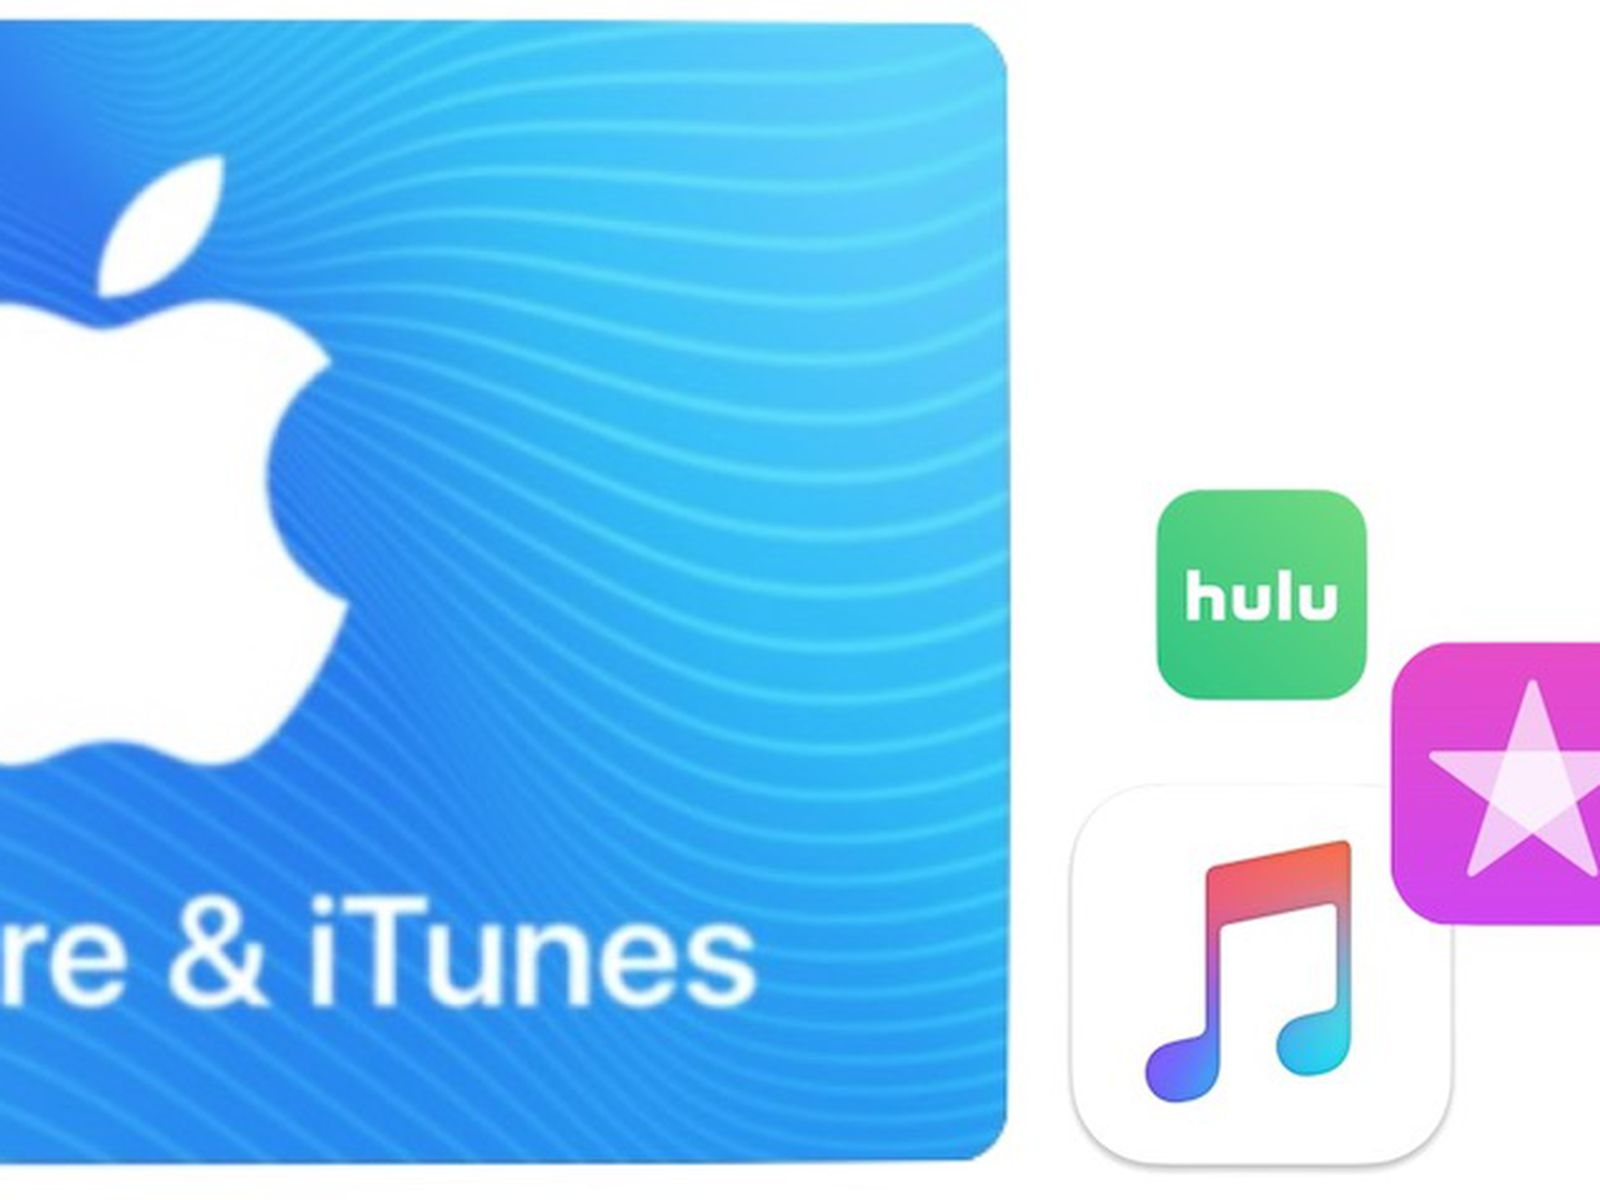 Itunes Gift Card Deals Save Up To 15 On Itunes Credit From Paypal Target And Costco Macrumors